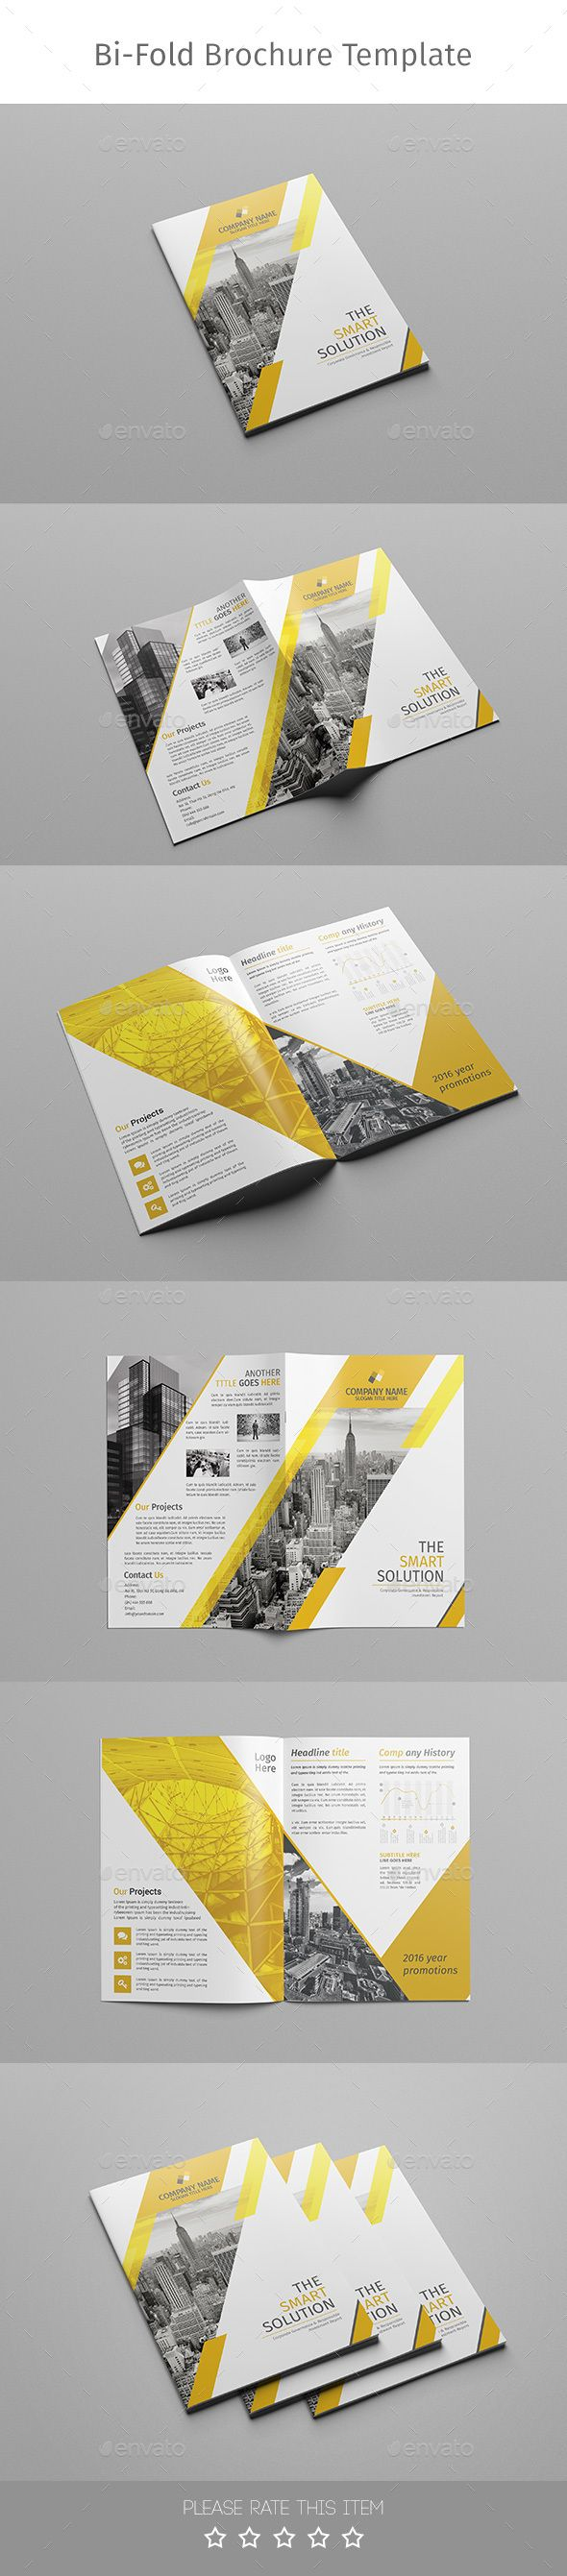 Corporate Bi-fold Brochure Template PSD. Download here: http://graphicriver.net/item/corporate-bifold-brochuremultipurpose-02/14656965?ref=ksioks